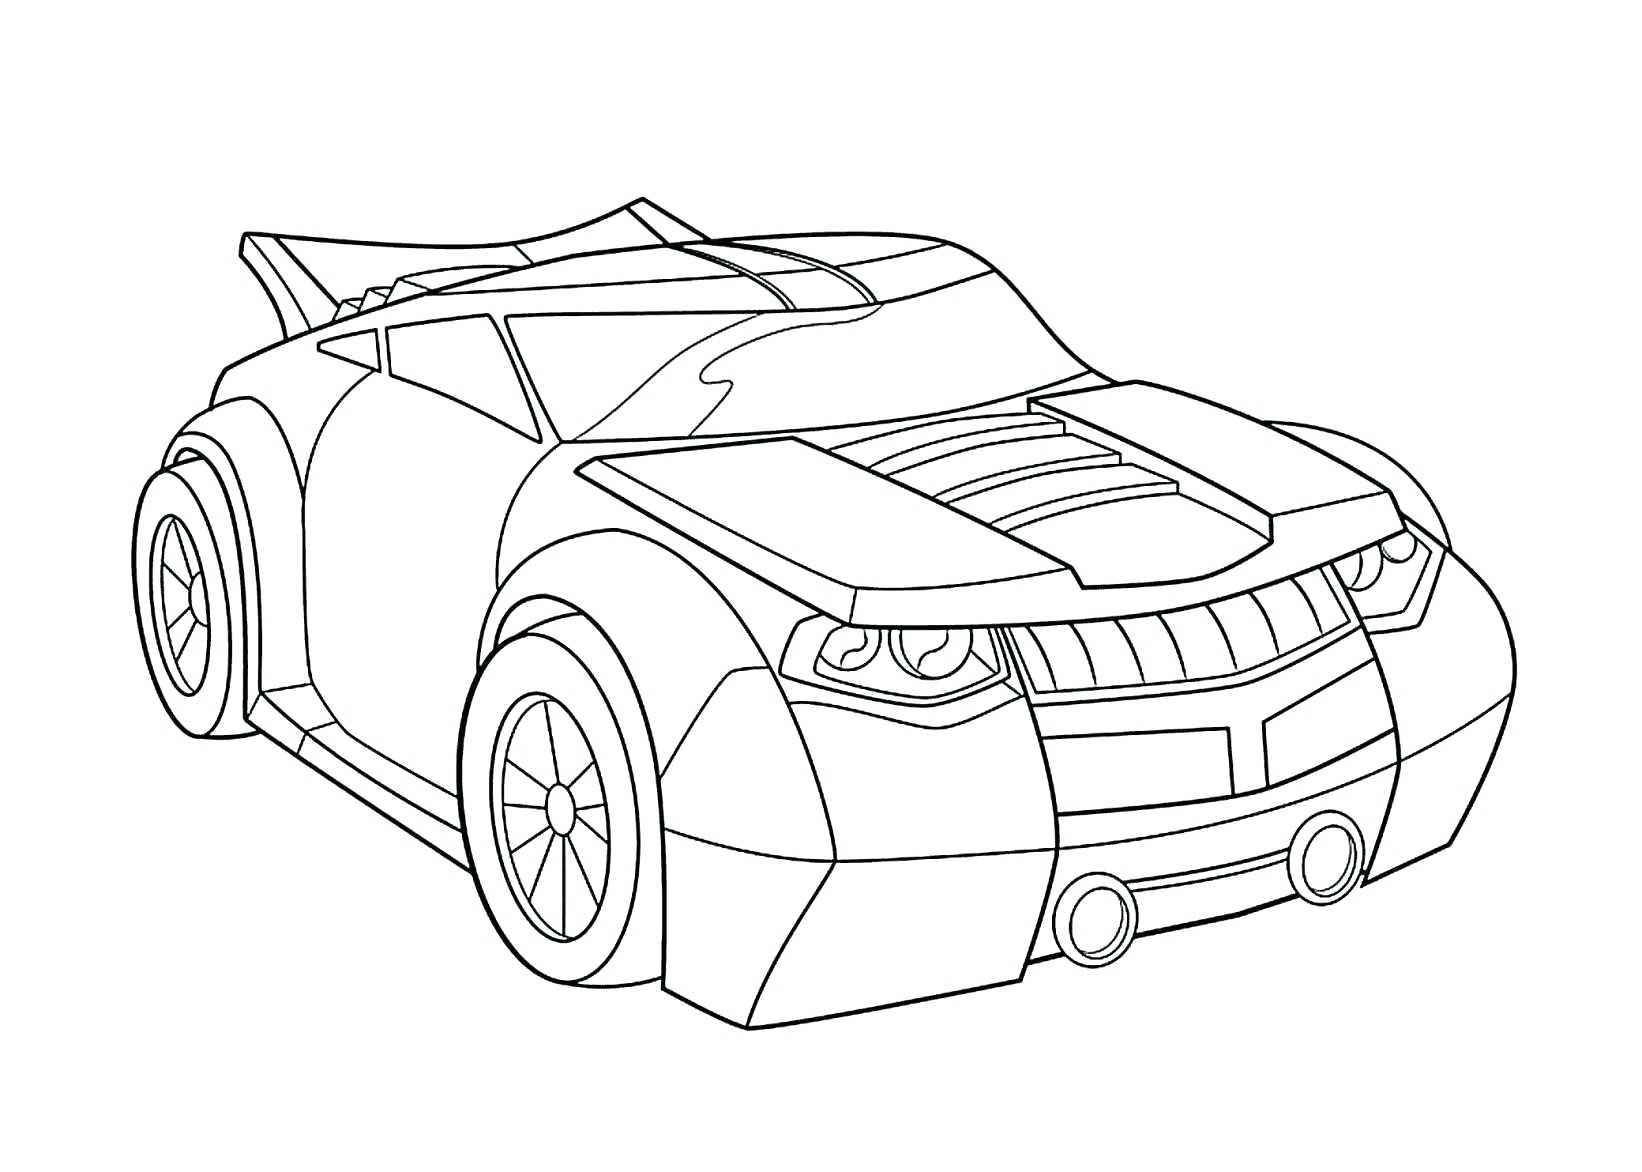 chargers coloring pages - photo#25